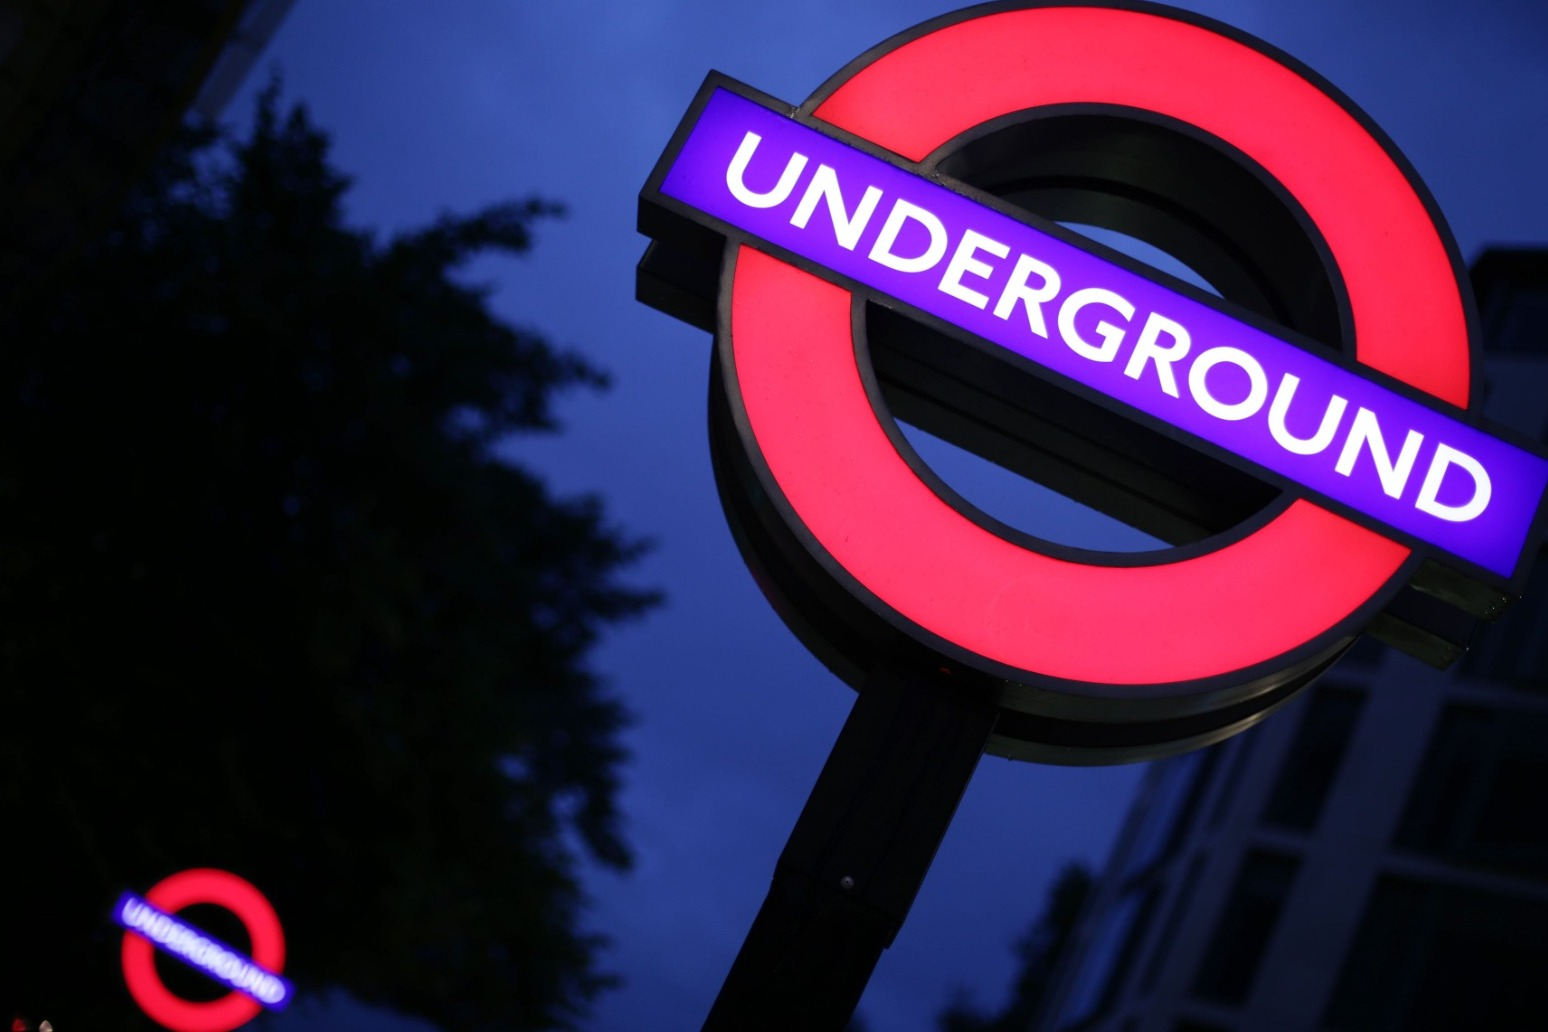 London underground workers to be balloted on strikes in pay row